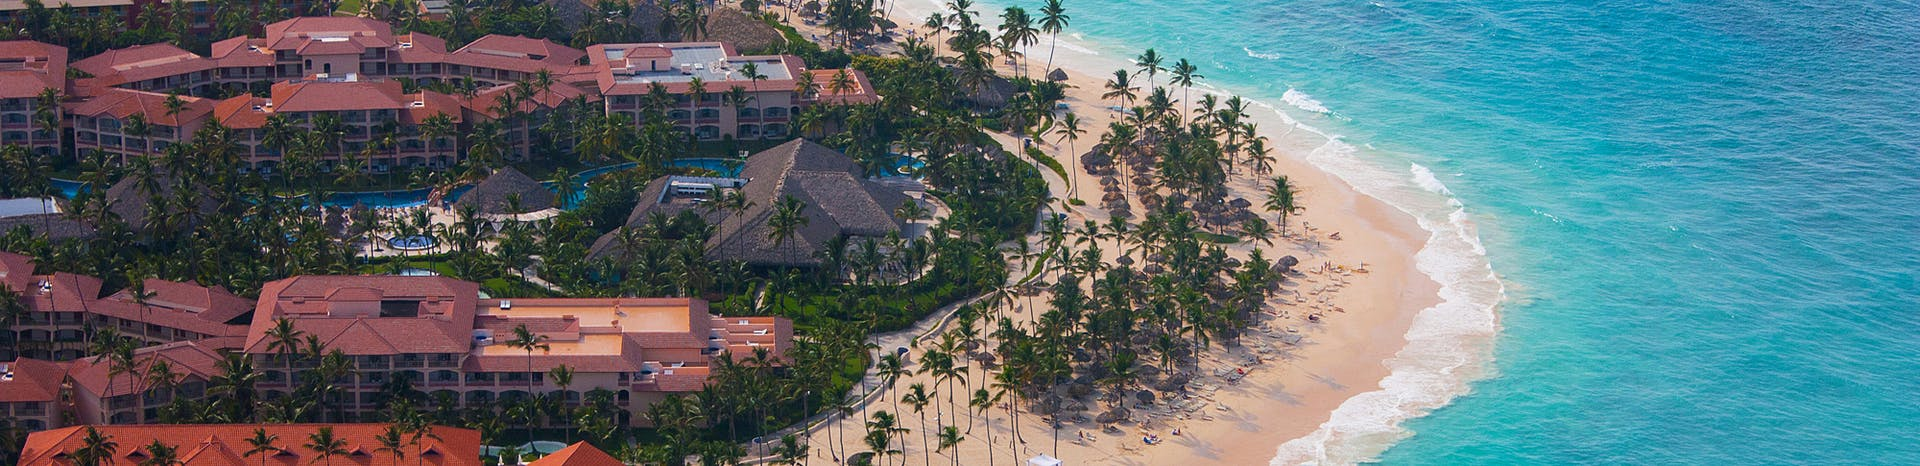 Picture of Punta Cana